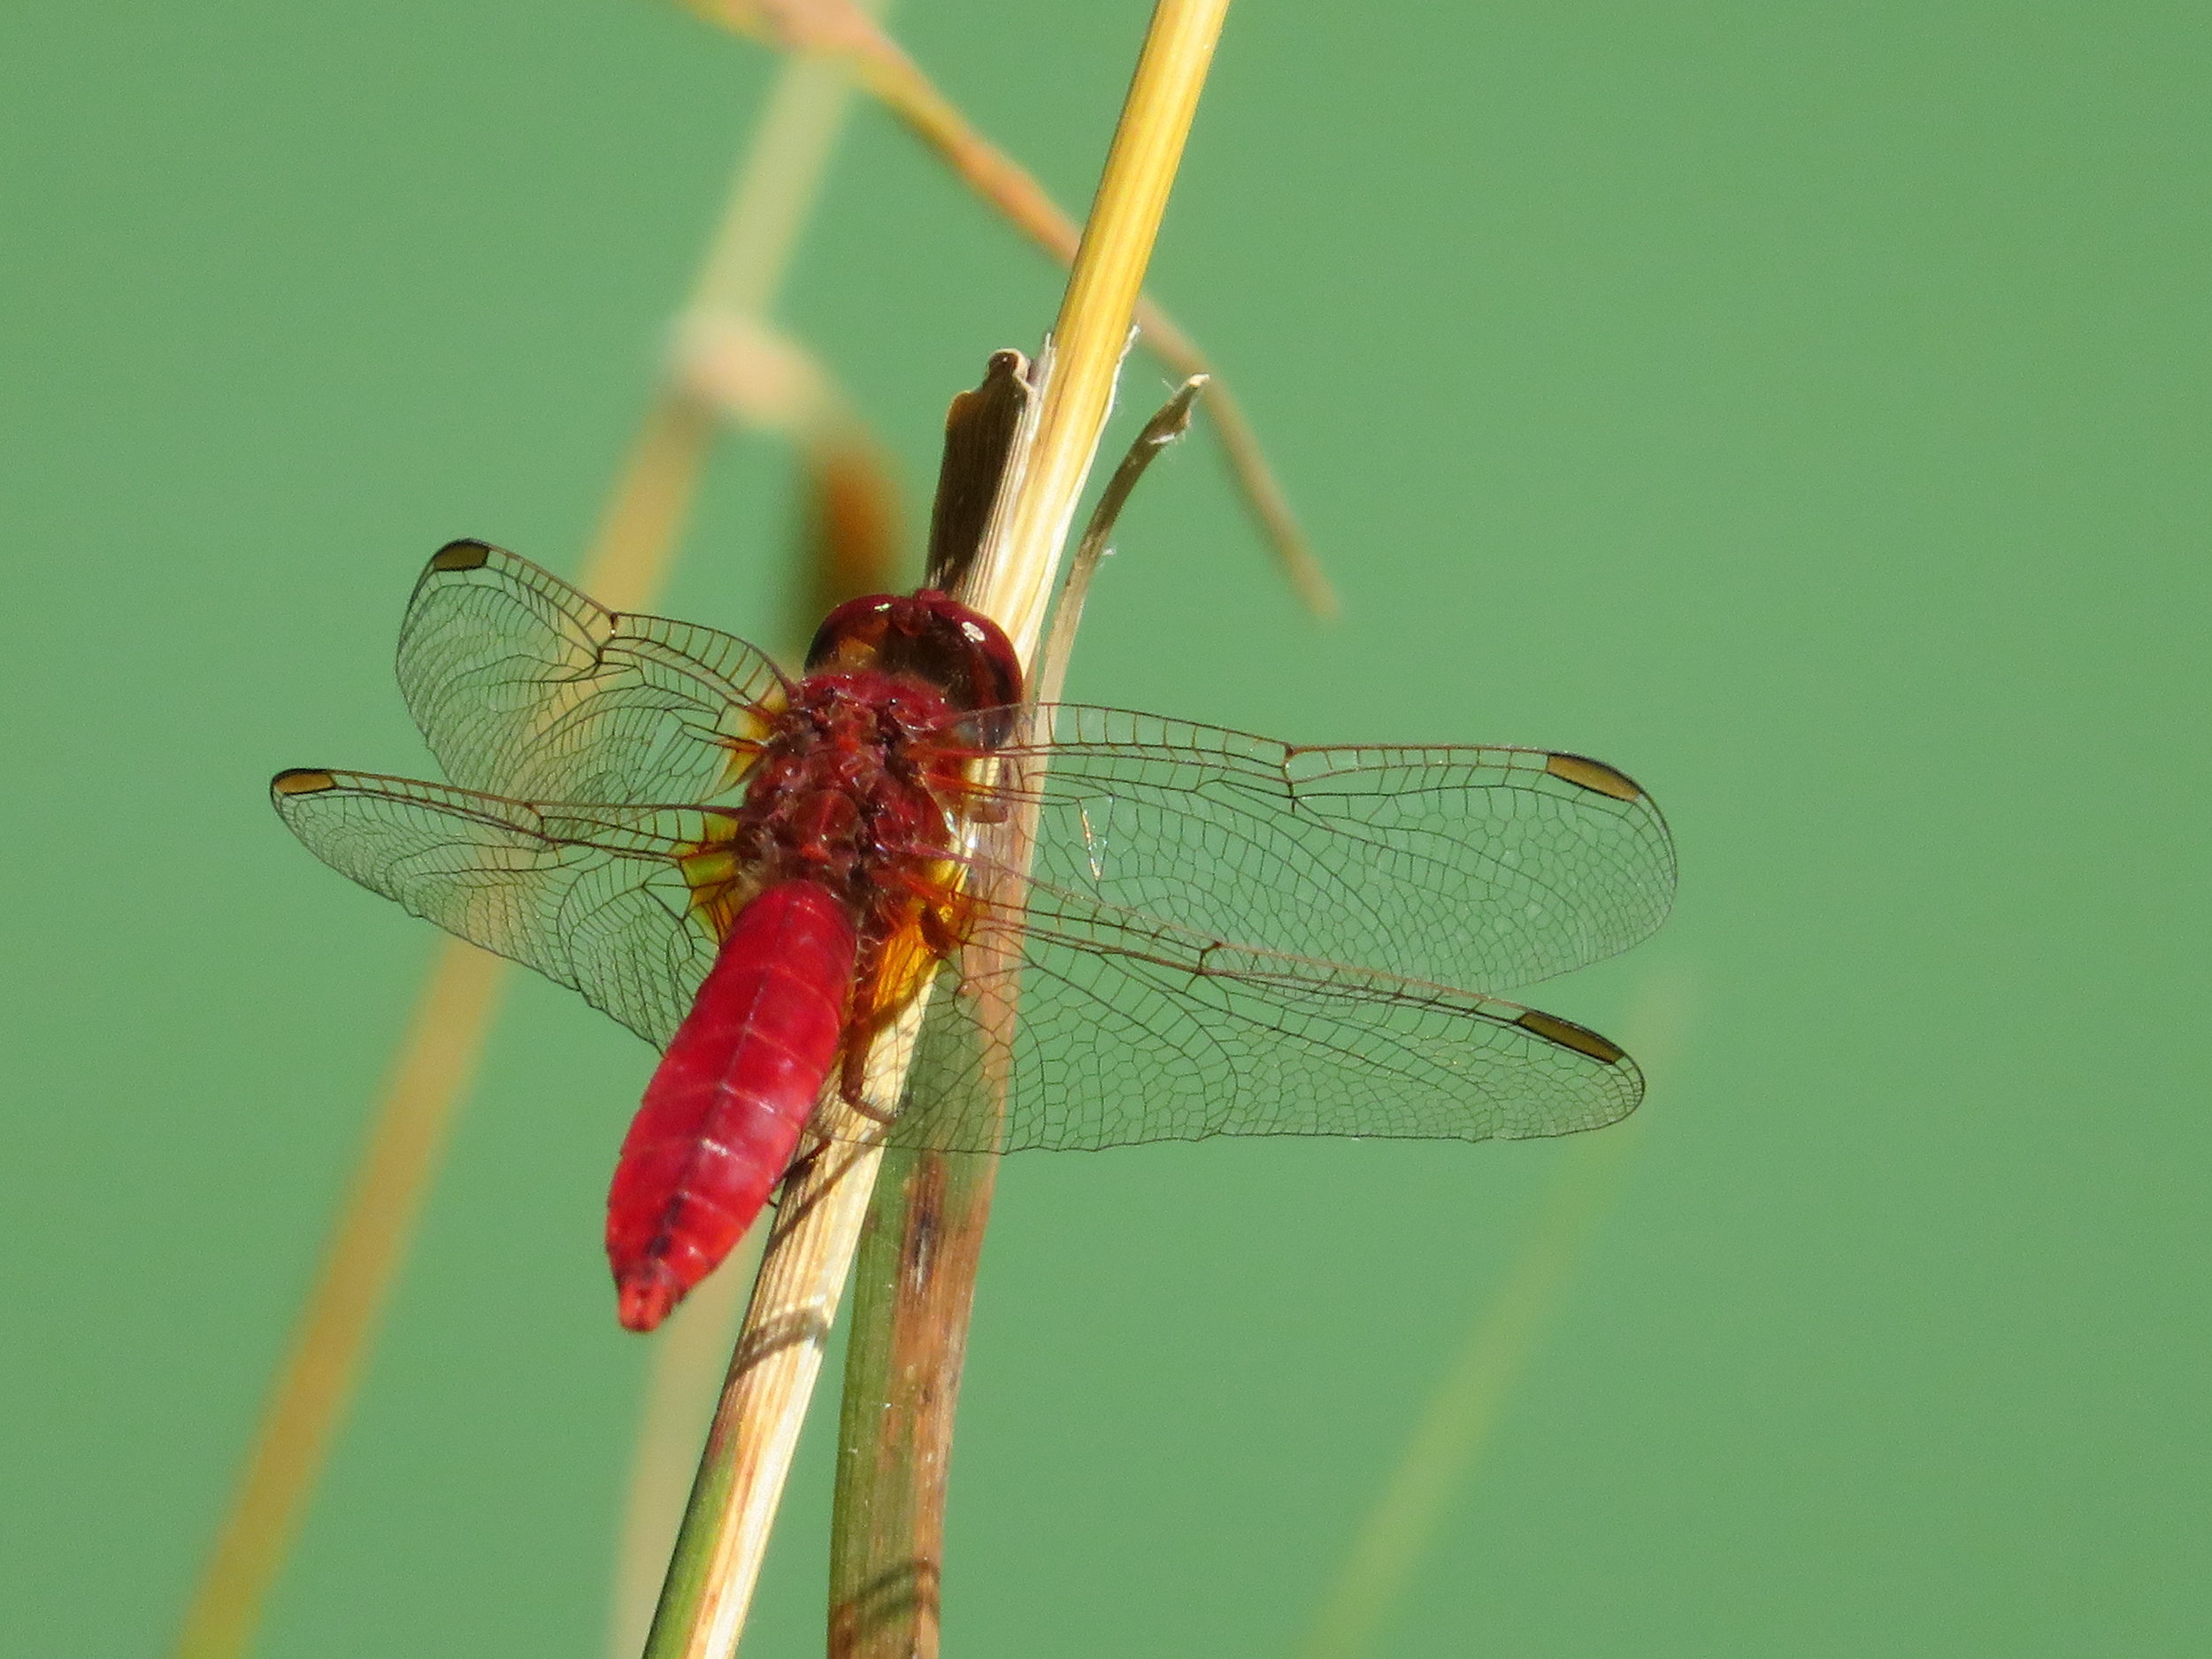 chatelraold-laChausee_red dragonfly.JPG